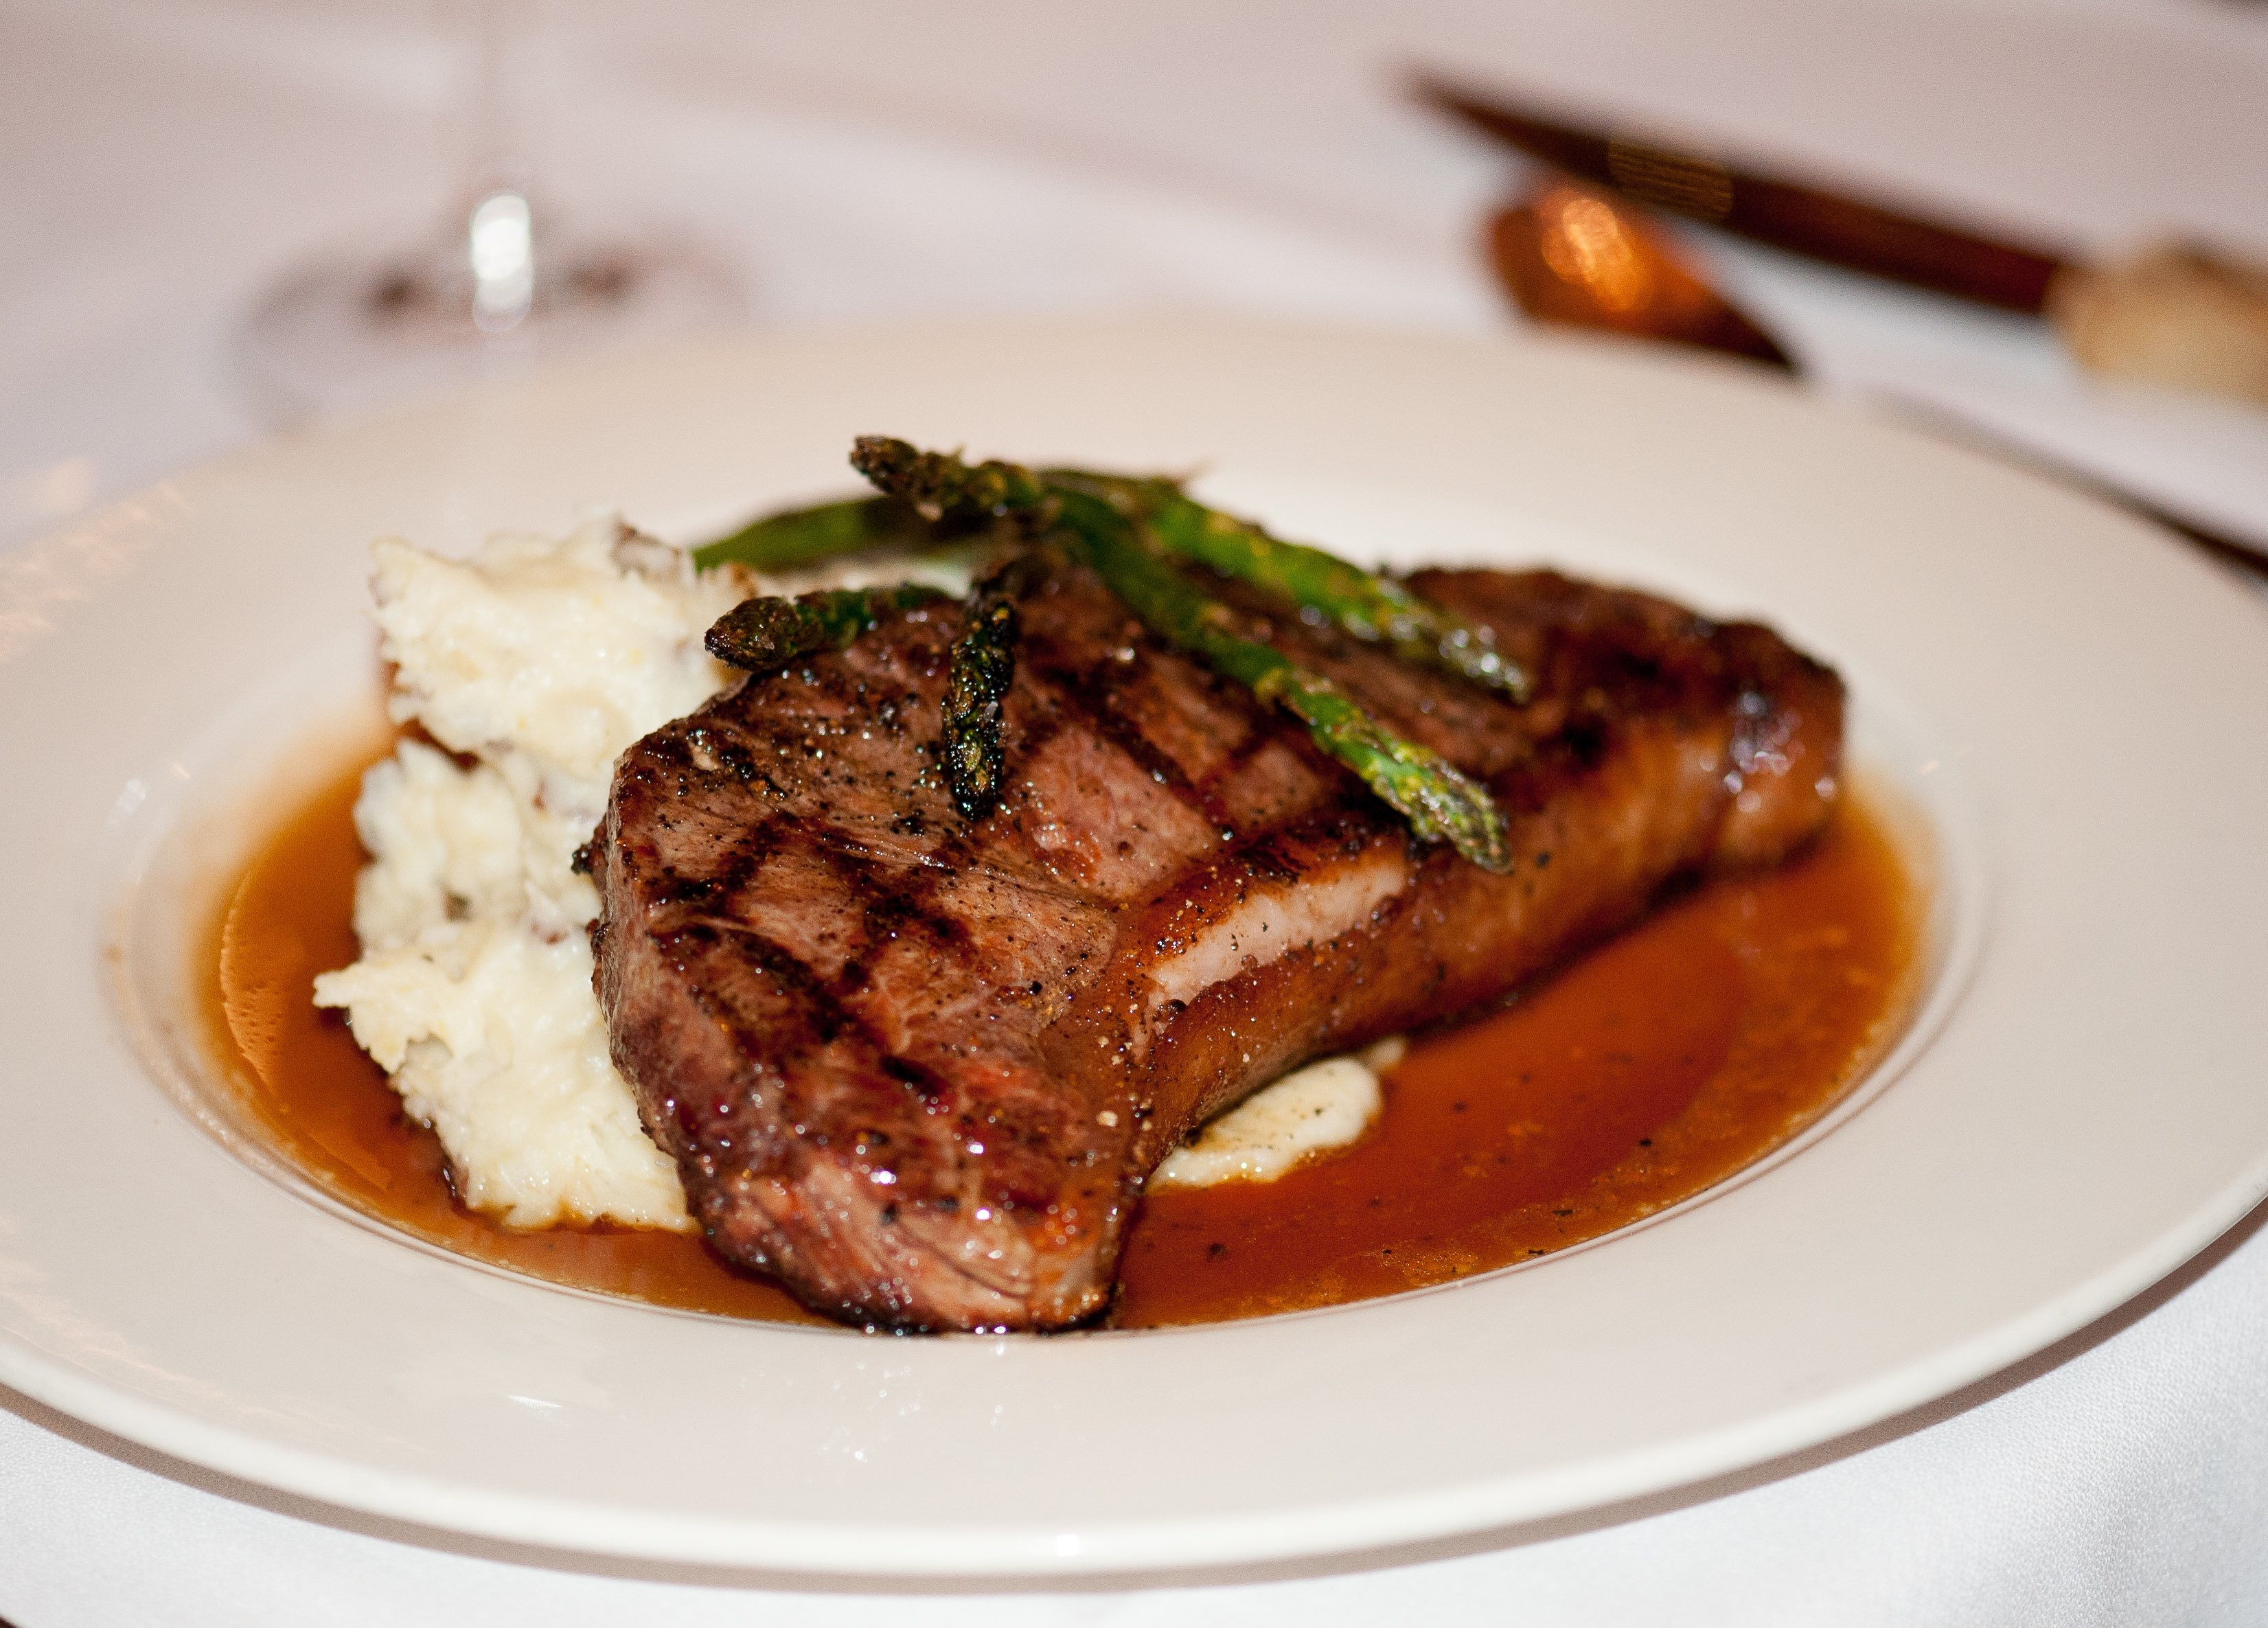 Local grass-fed beef, pork and lamb can be found at farmers markets in Yellowstone Country. Pictured is a steak dinner at Lone Mountain Ranch in Big Sky, Montana.